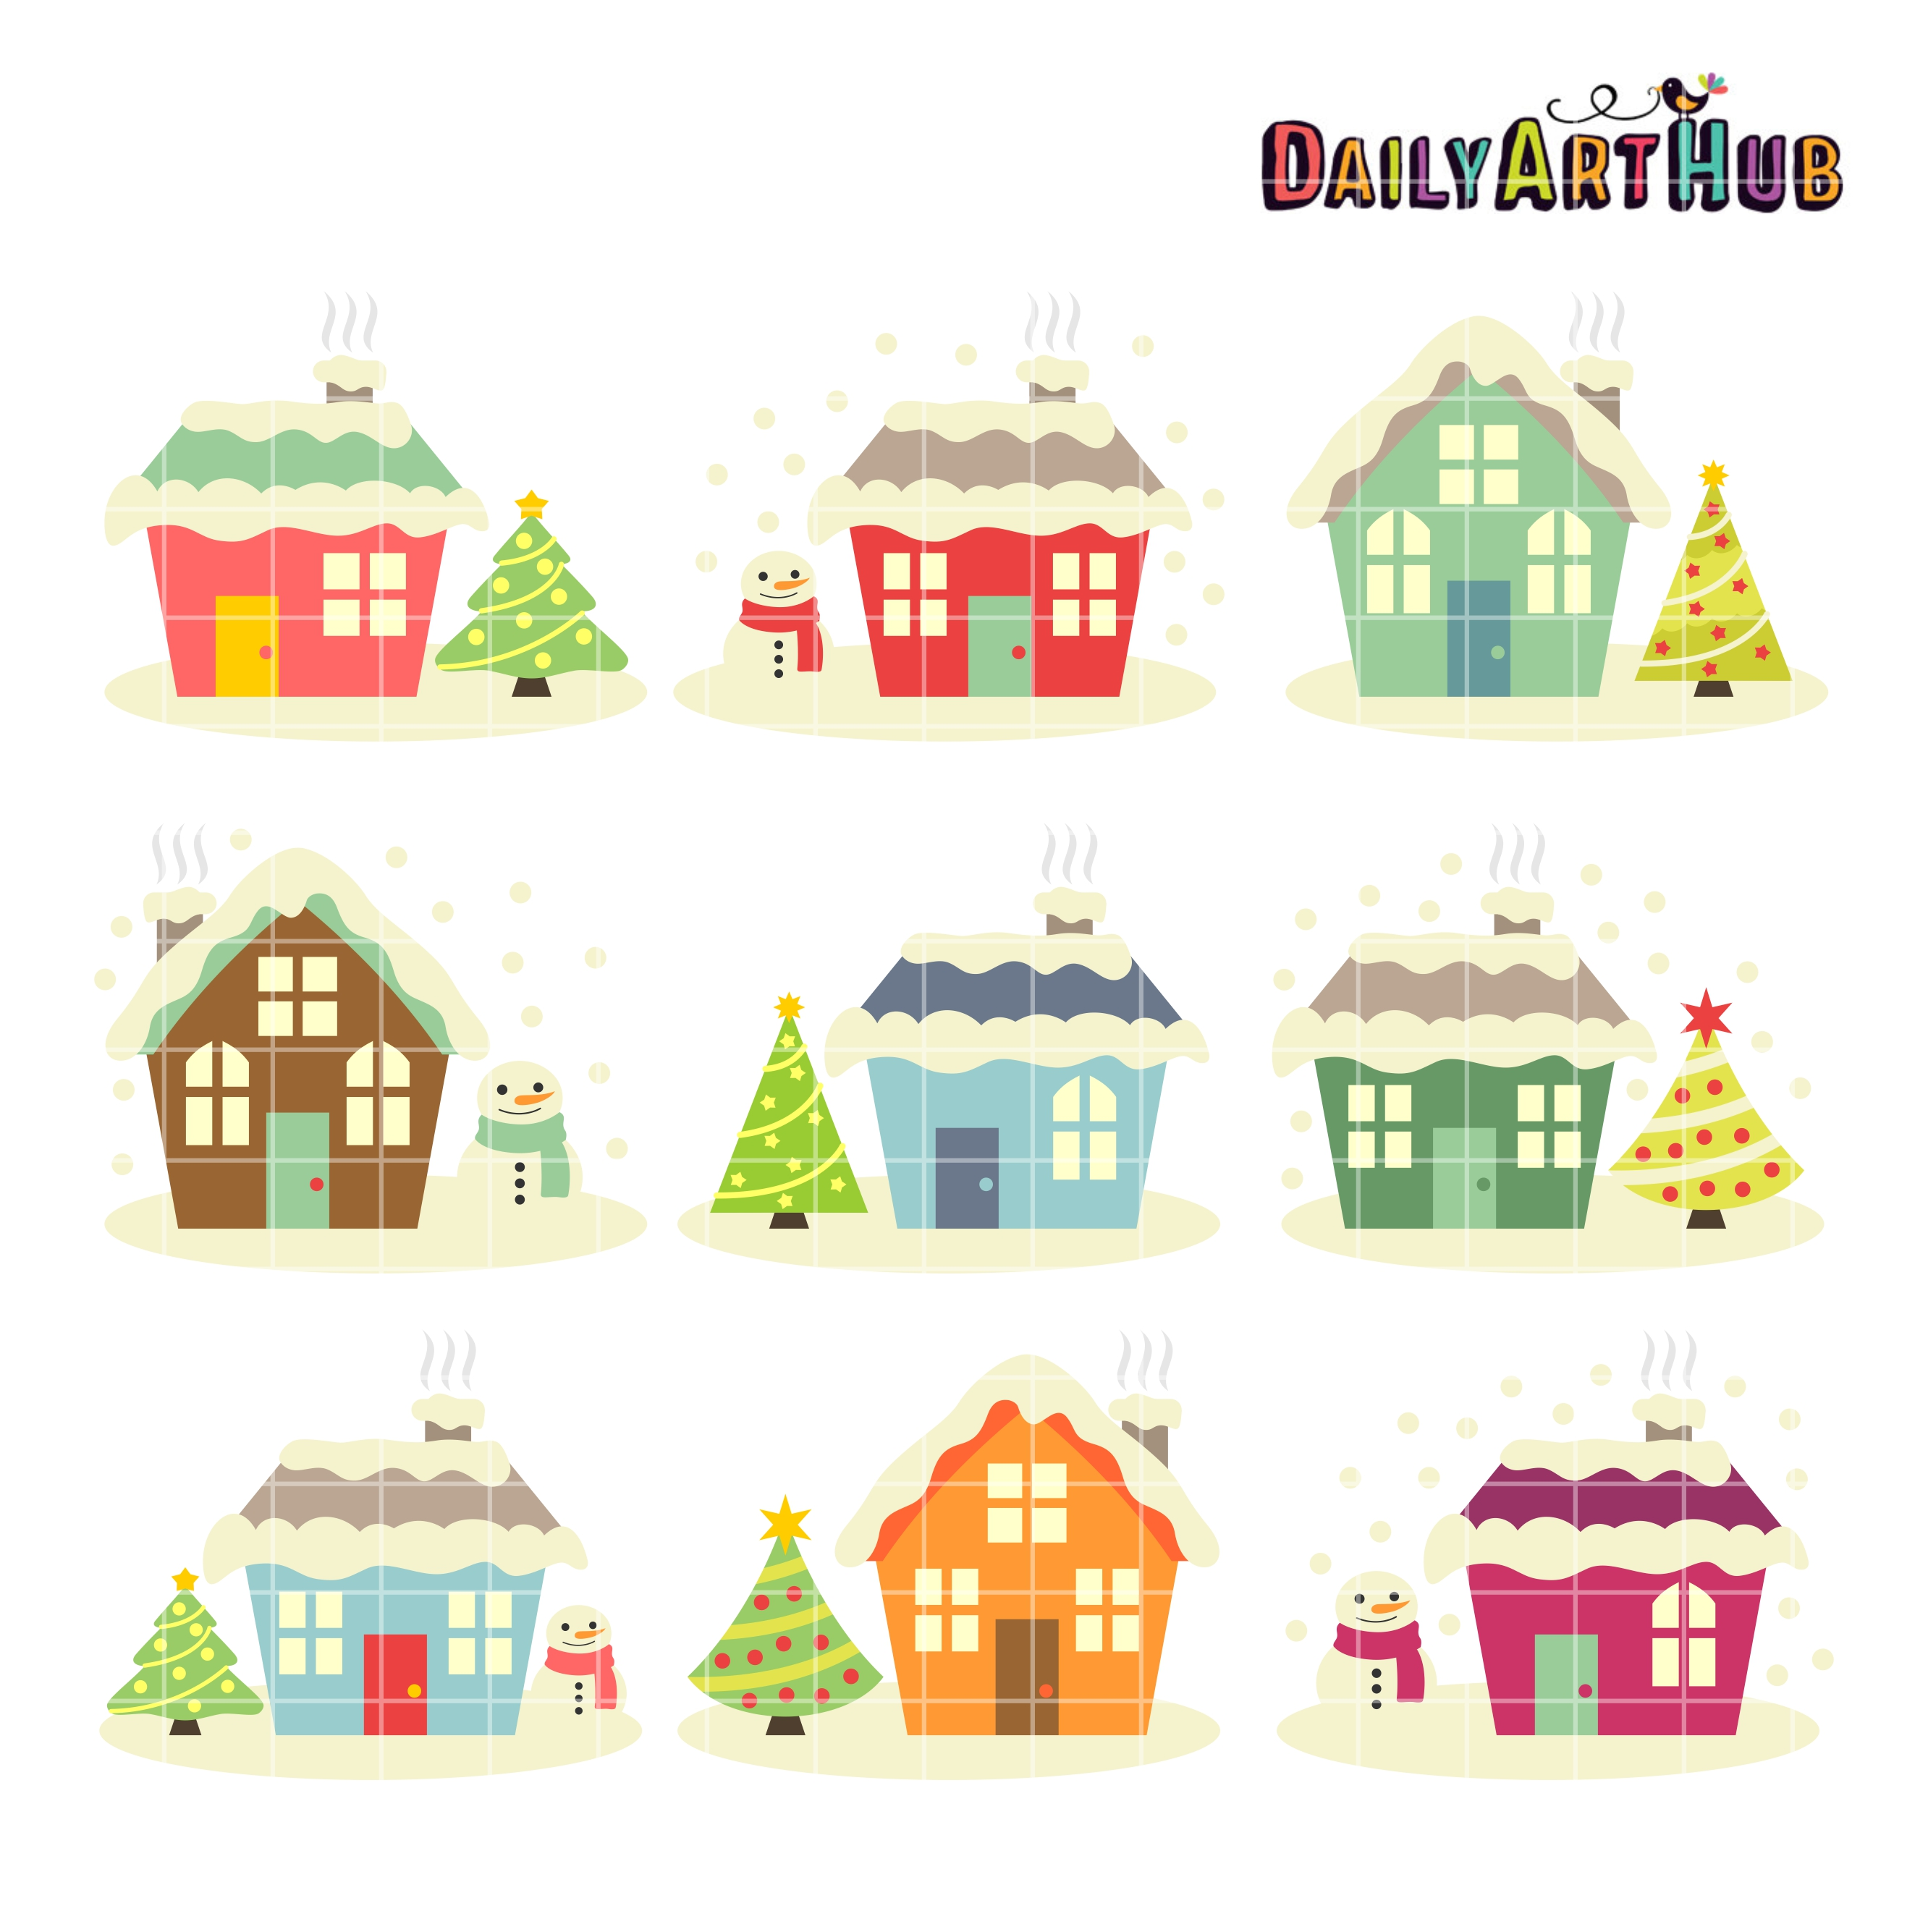 Christmas Houses Clip Art Set | Daily Art Hub